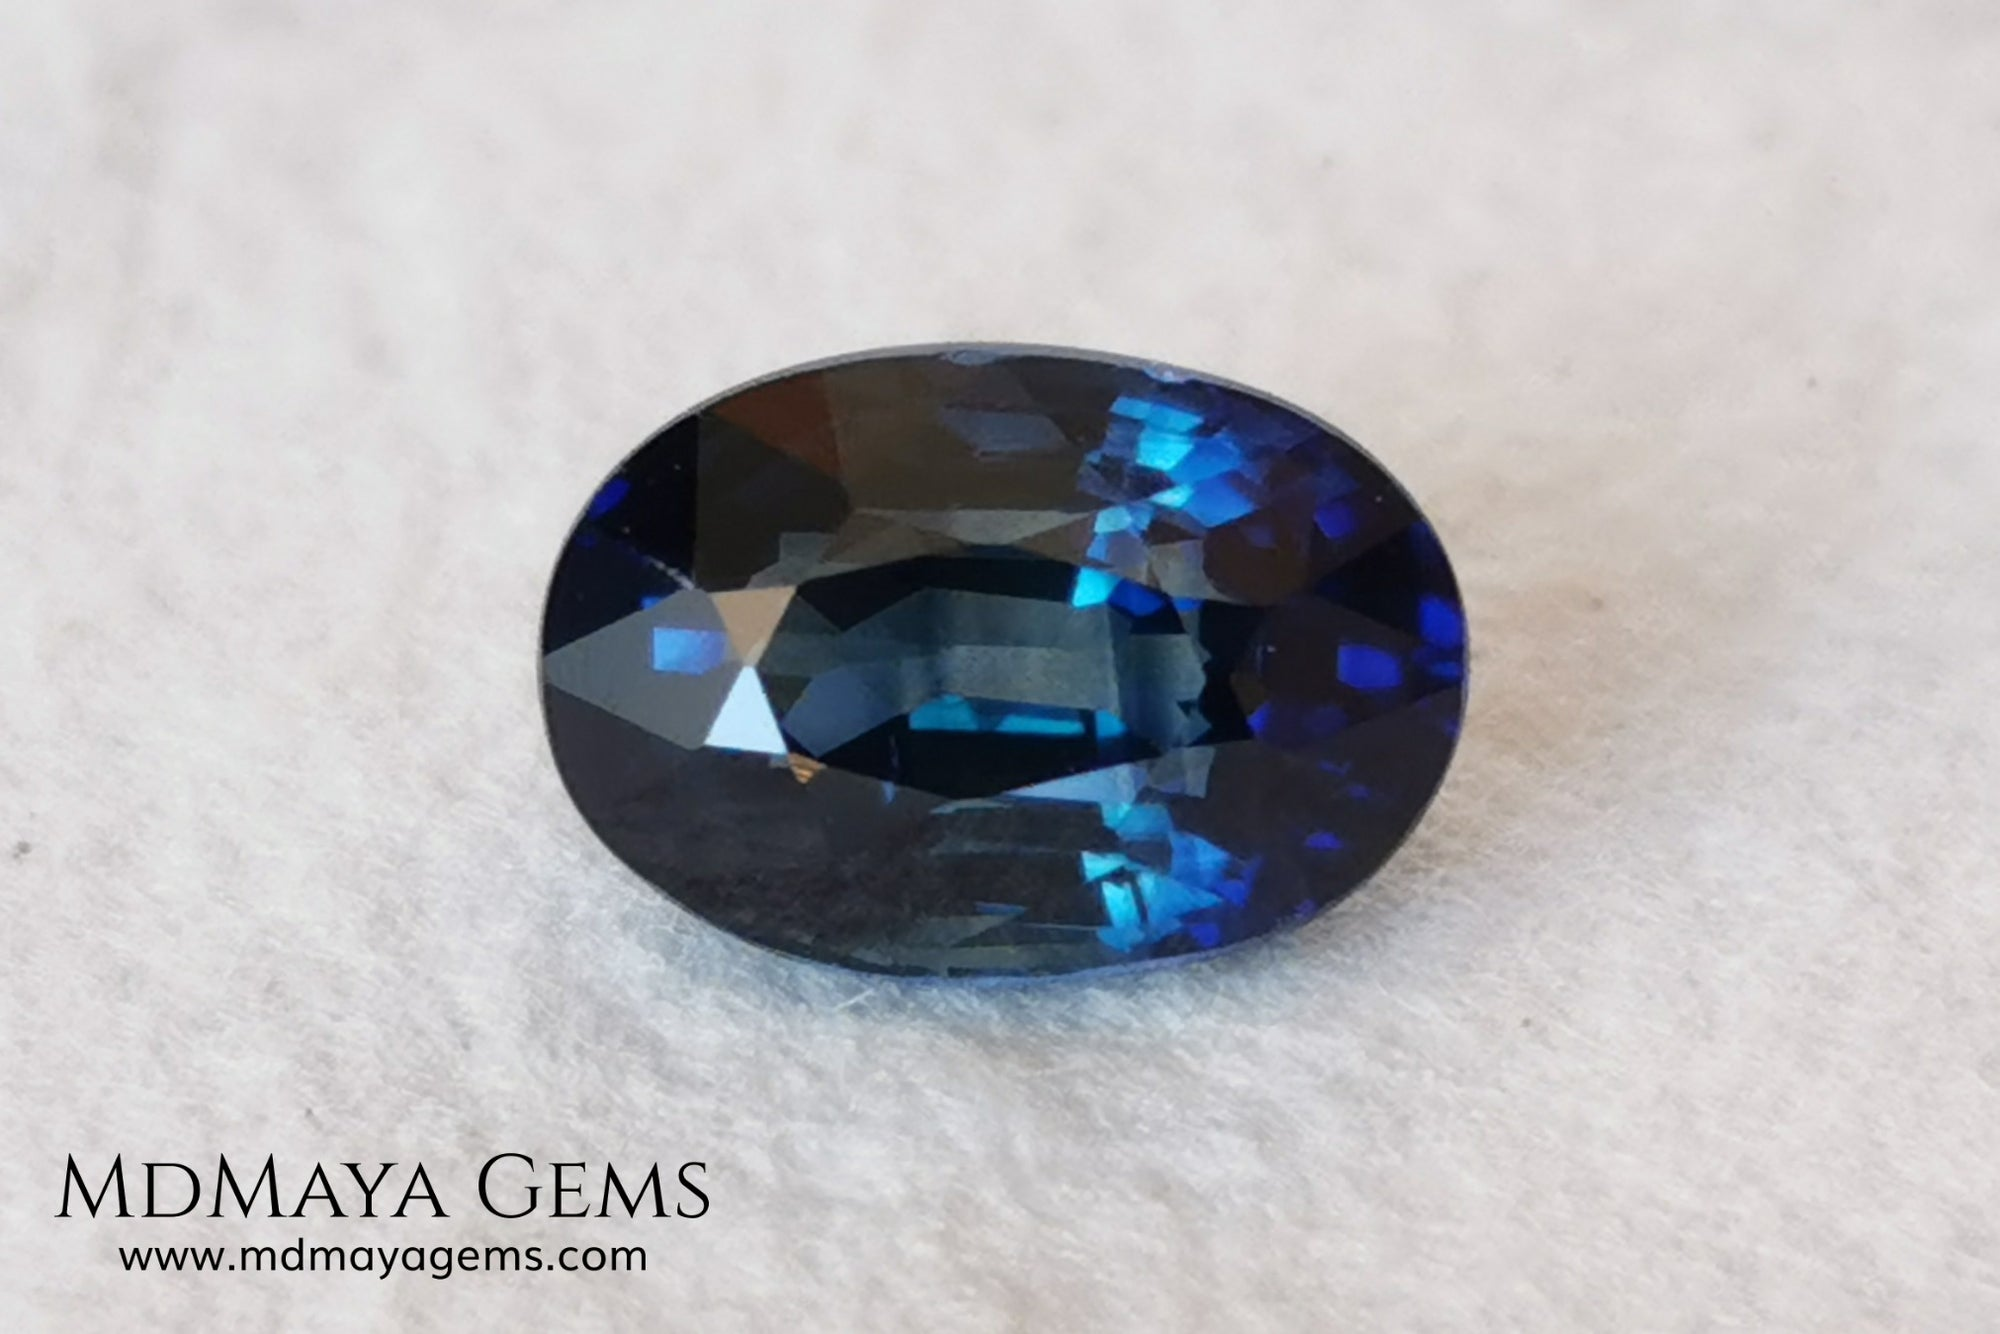 Untreated indigo blue sapphire 1.52, oval cut, certificate included.  This dark blue sapphire shows two shades of blue, one more vivid in the center of the gem and darker at the ends, its behavior under light is good, both in incandescent light and under natural light, it is a dark blue sapphire full of sparkles and life. Its elongated oval cut will be very beautiful in any piece of jewelry. This sapphire is ideal for those looking for untreated gemstones of any kind at a good price.